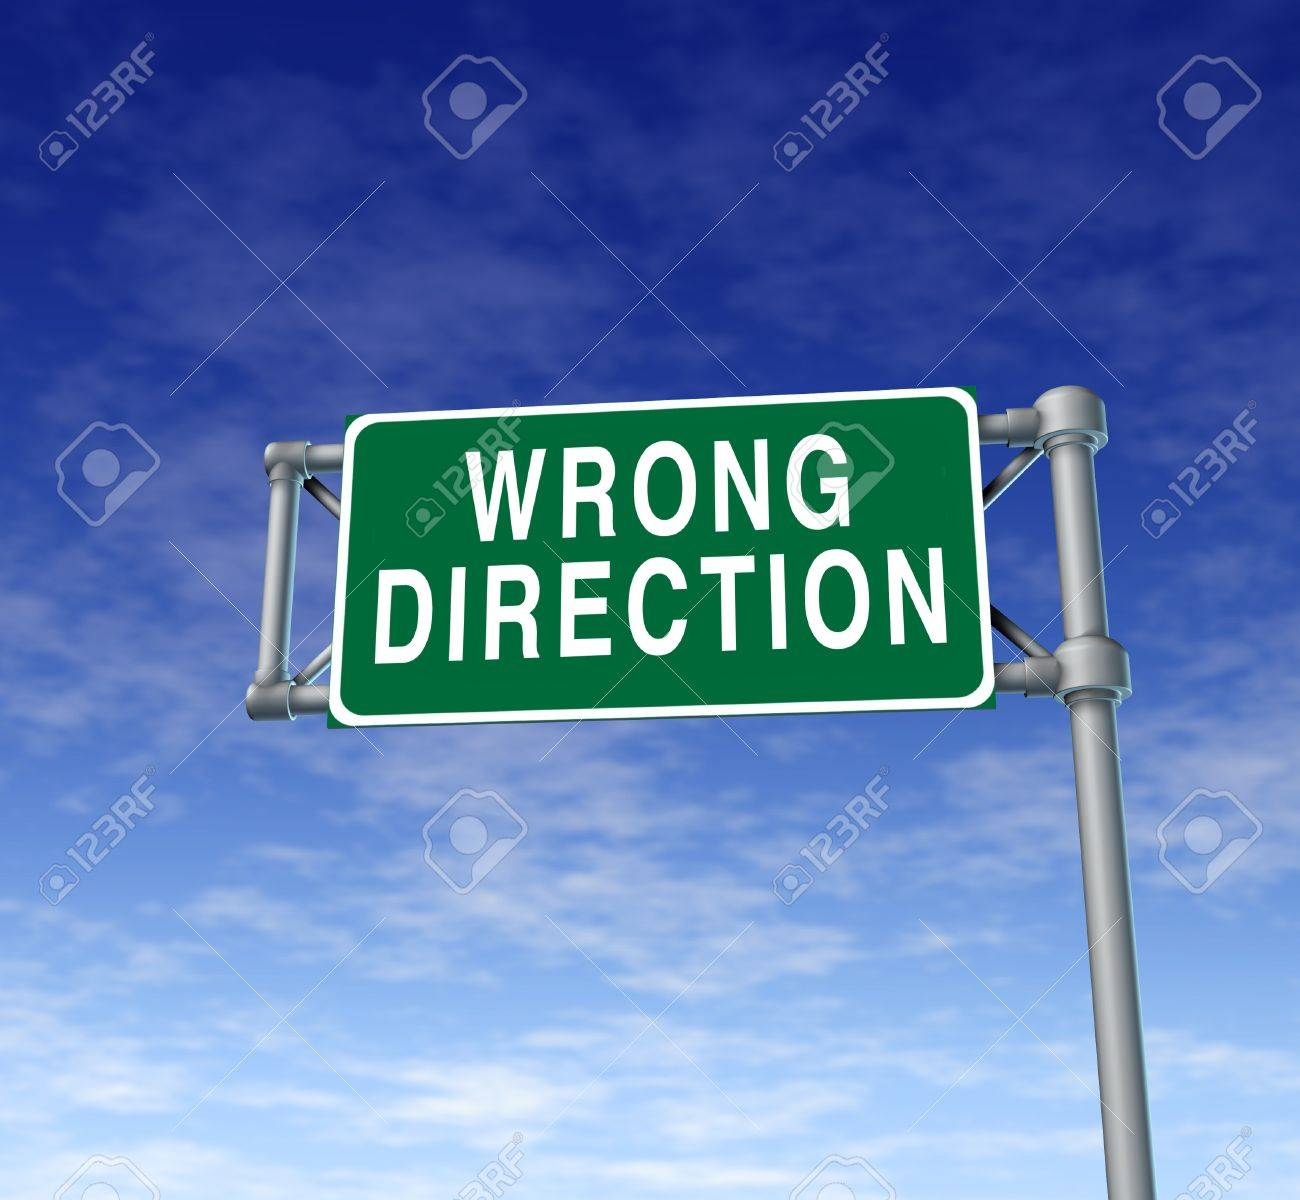 Image result for wrong direction